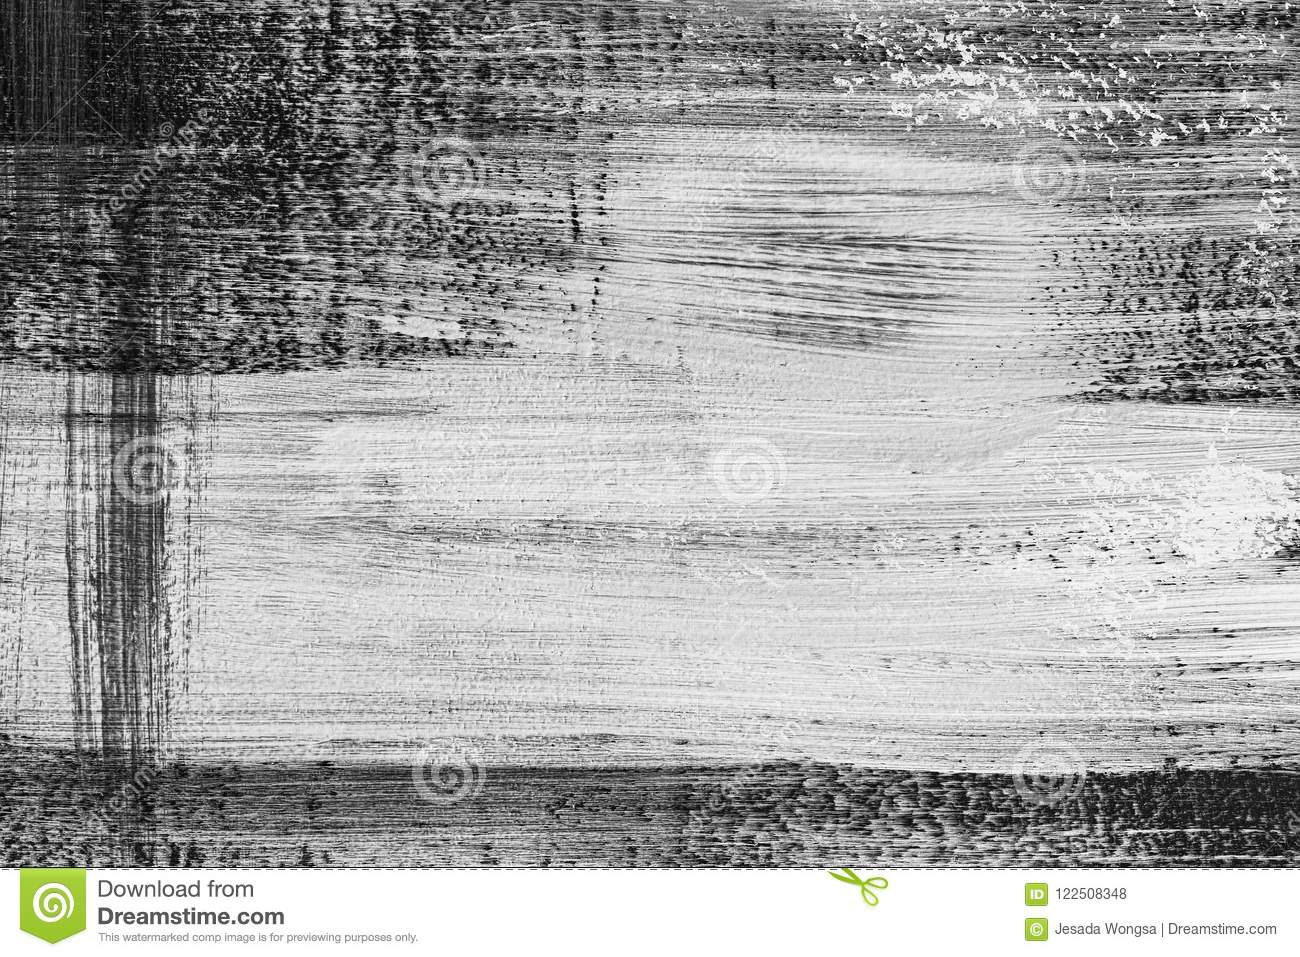 Black and white paint textured abstract high resolution texture for background